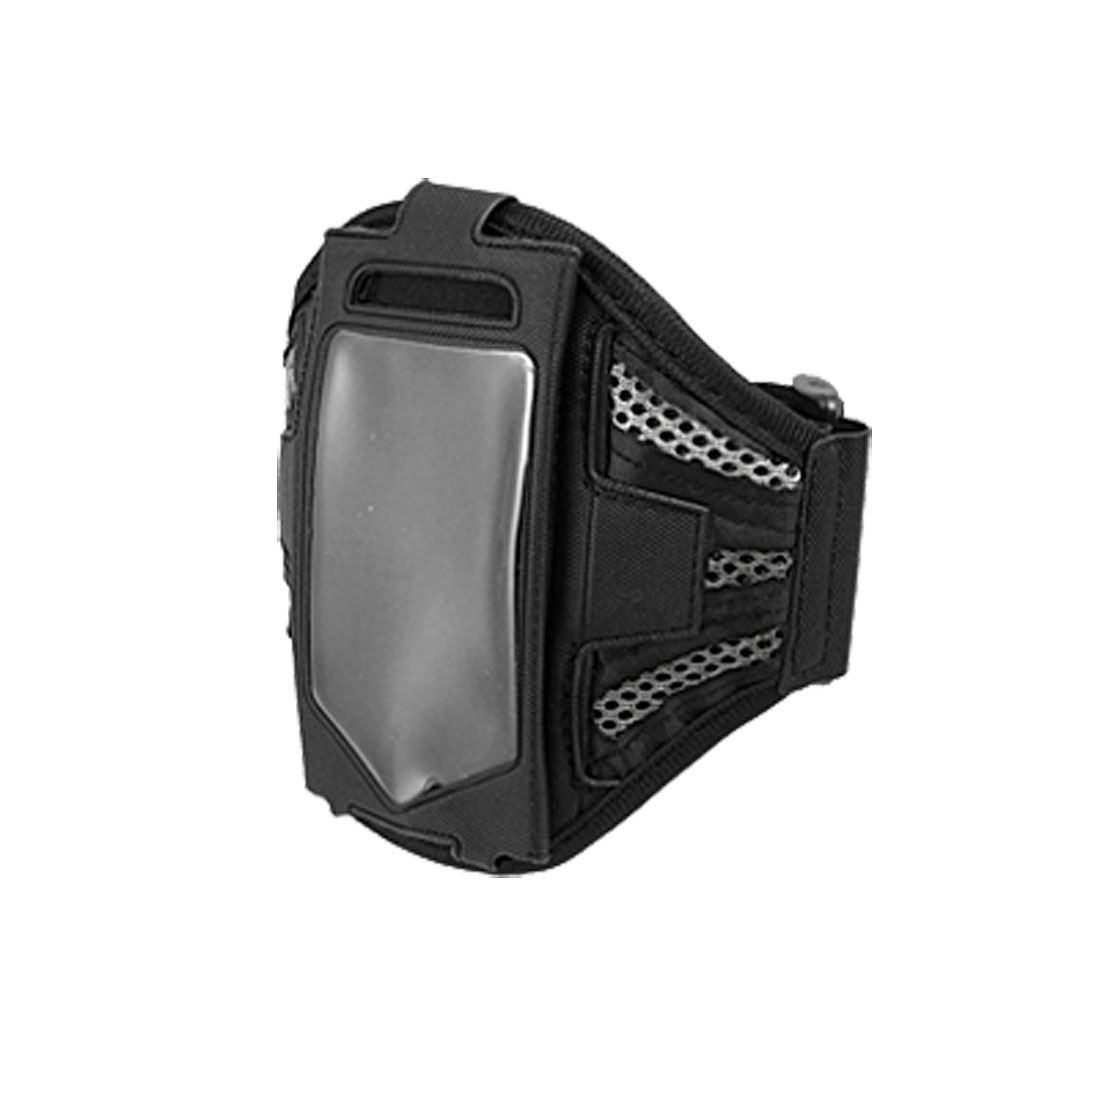 Sports Running Detachable Armband Case for Mobile Phone